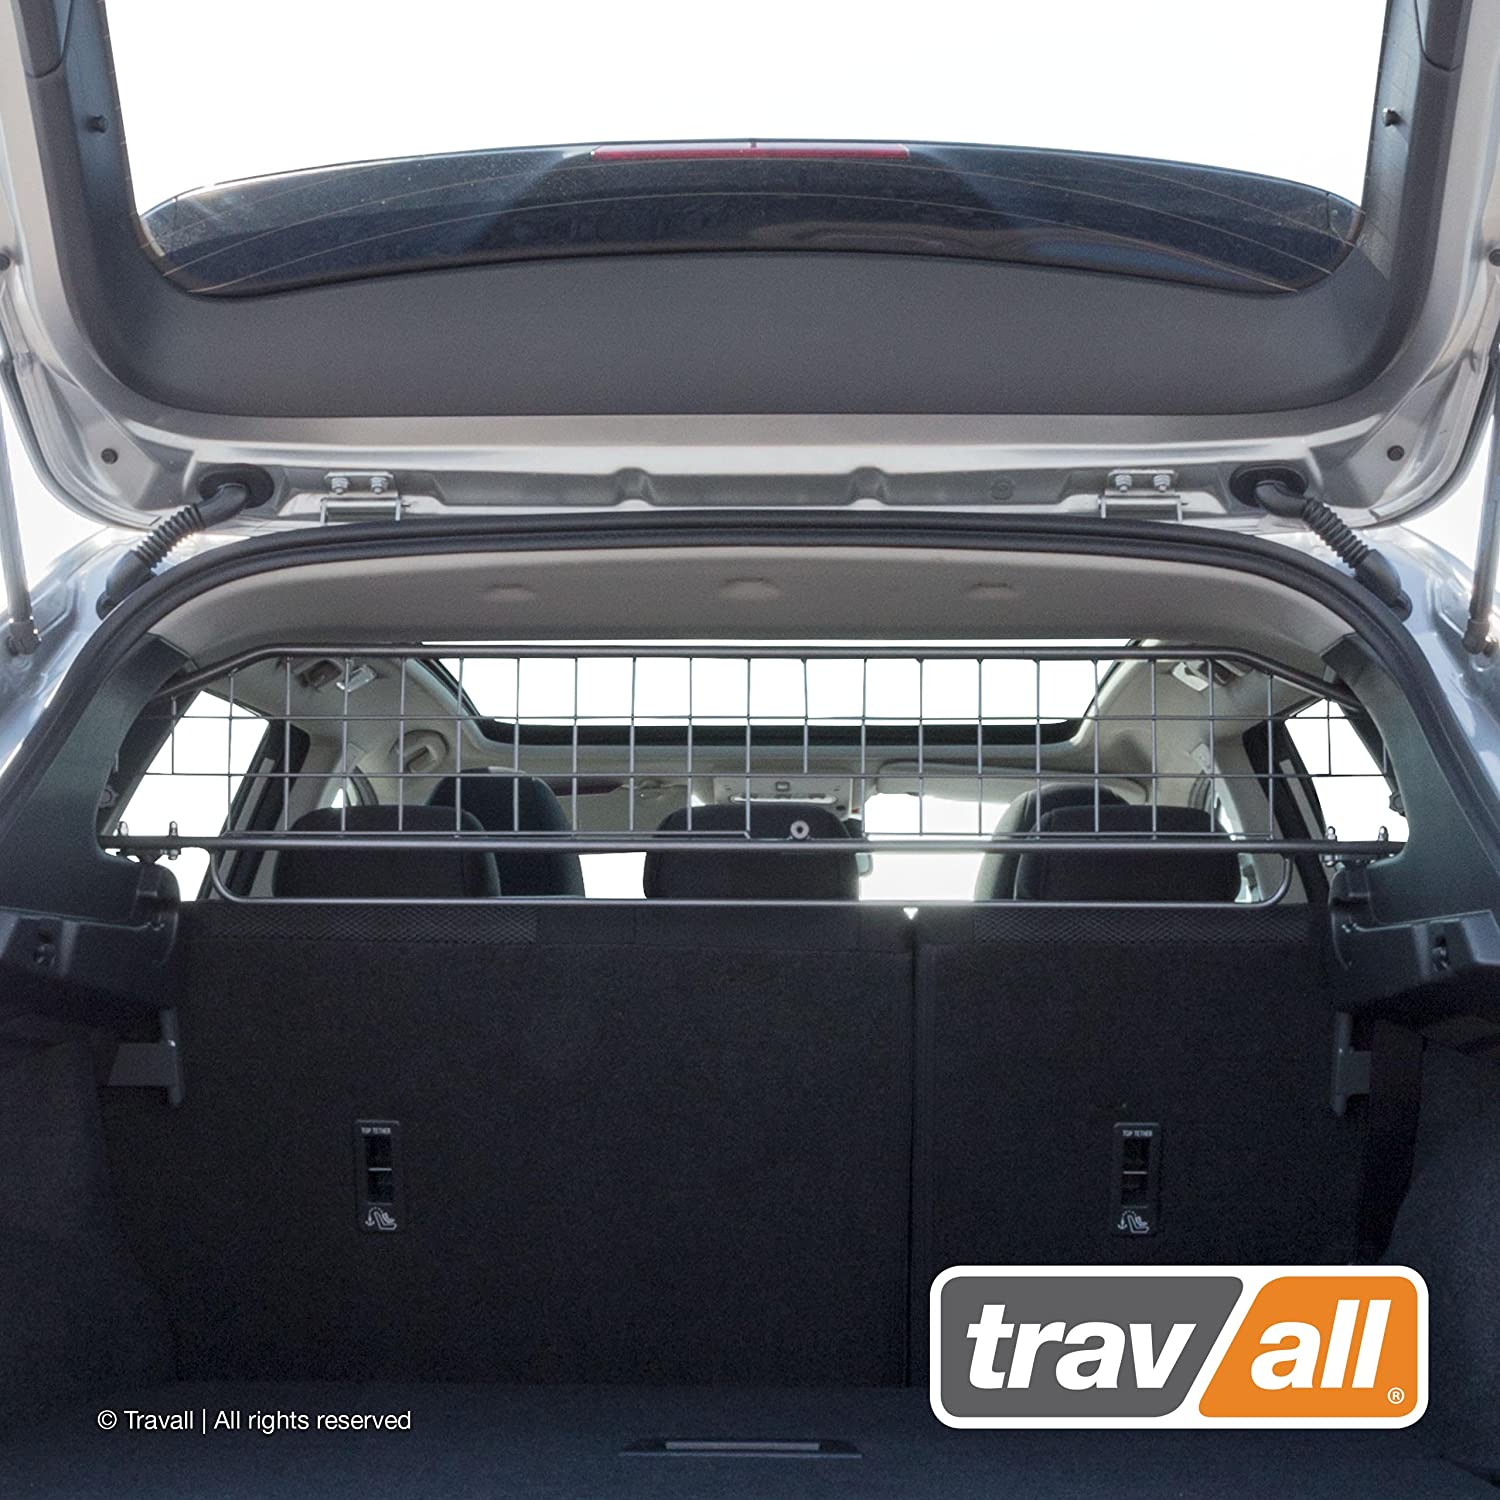 Travall Guard TDG1538 - Vehicle-Specific Dog Guard